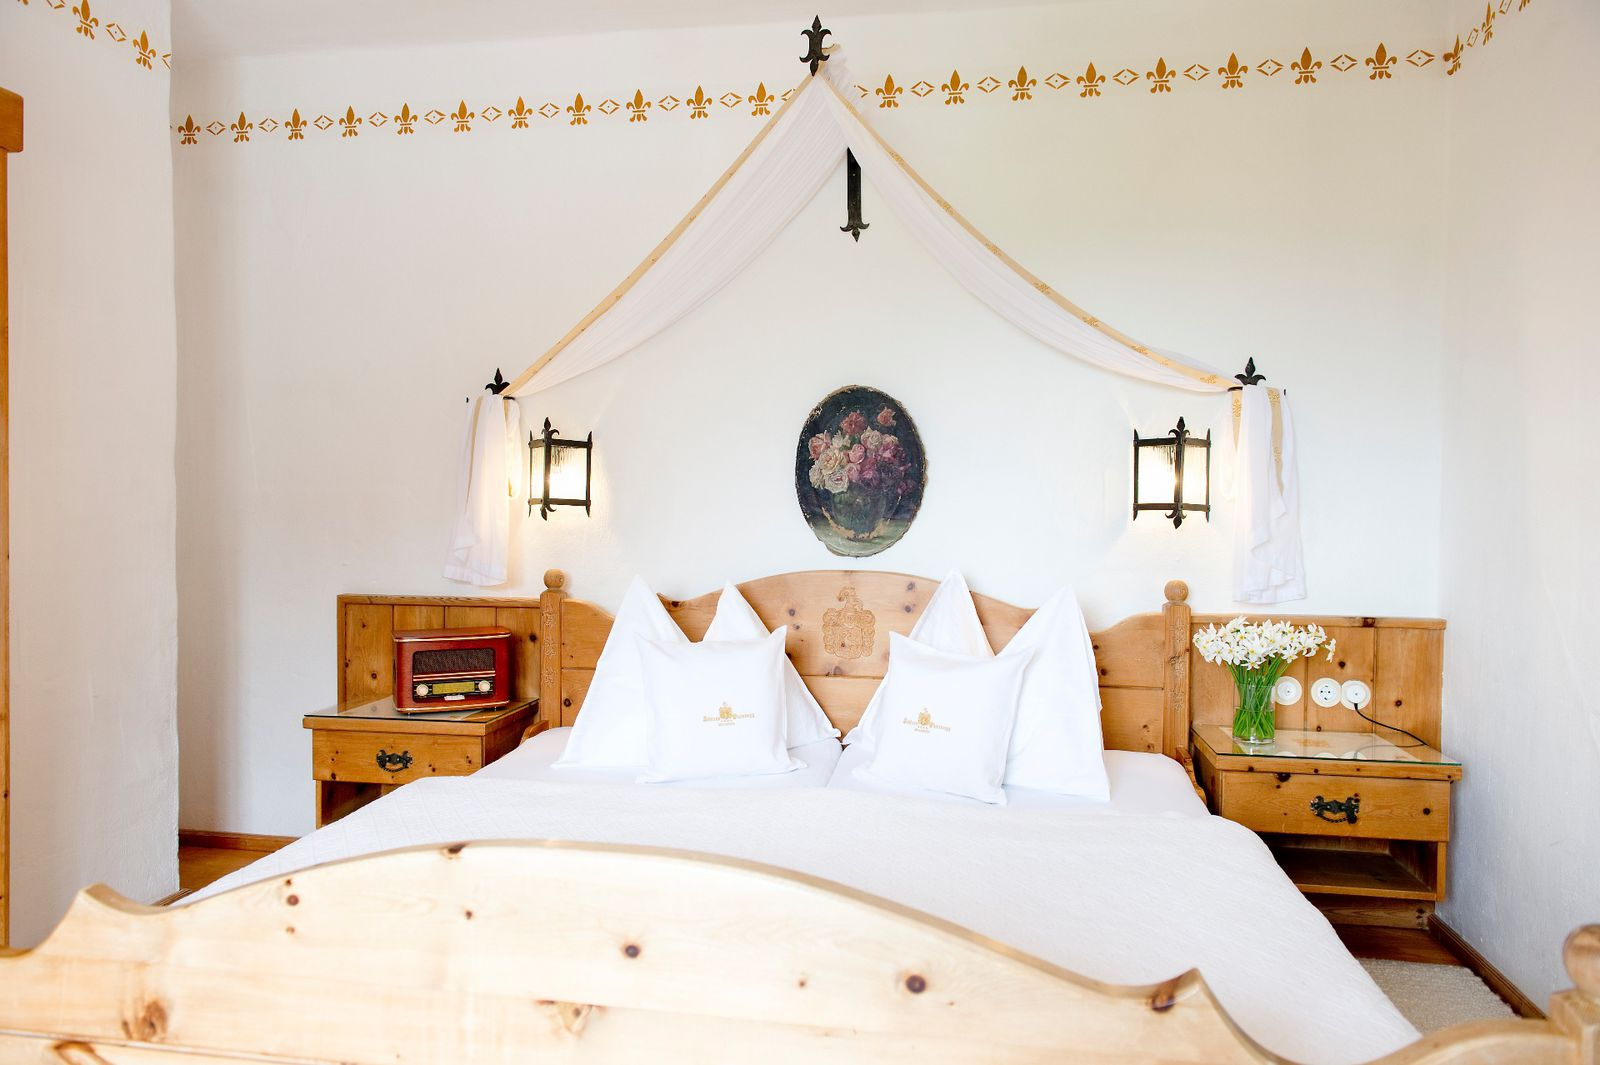 Romantic Night or Romantic Weekend at the Castle, Package for Lovers